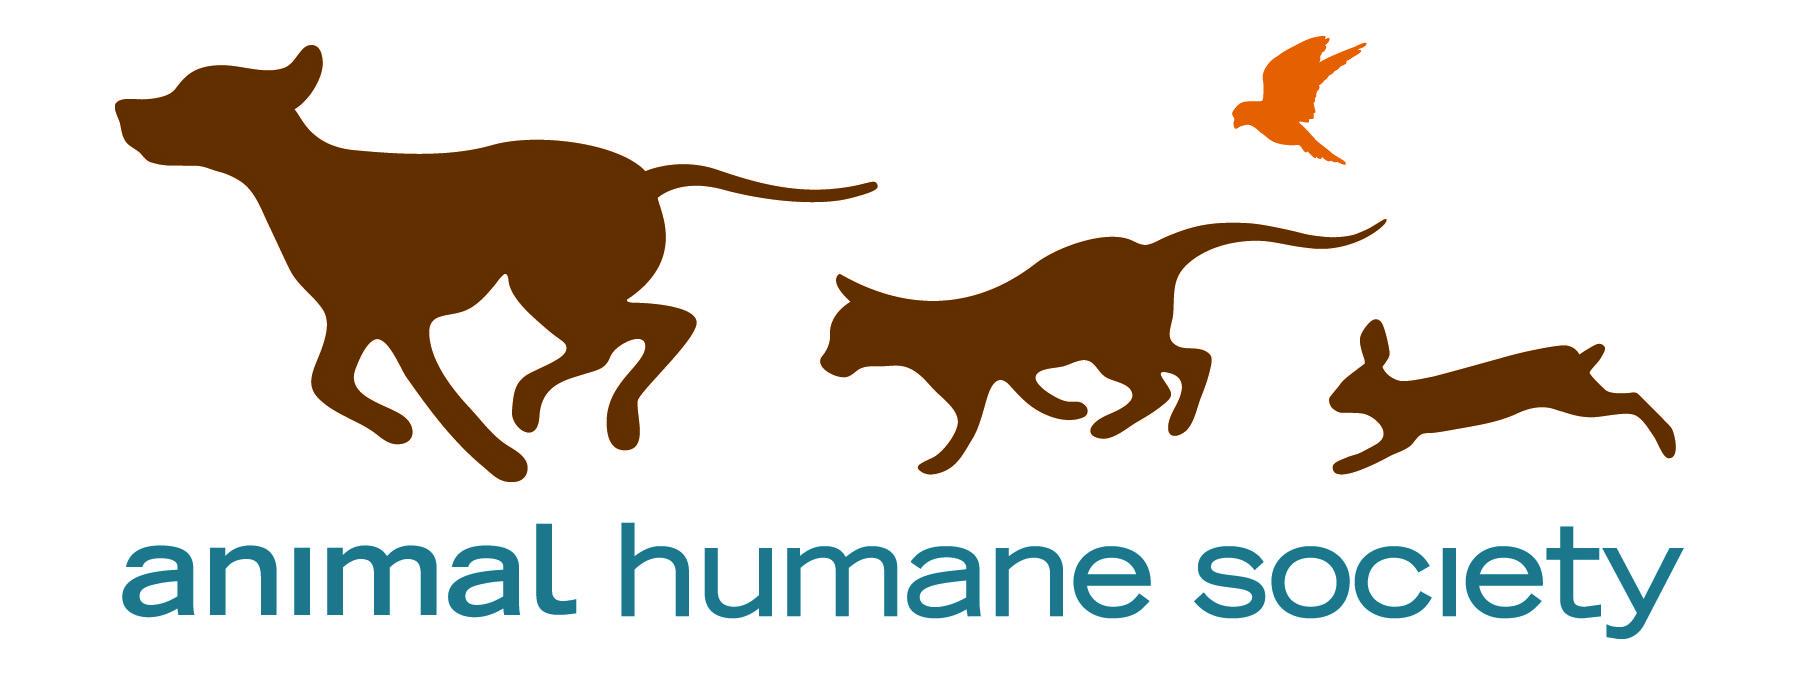 The Animal Humane Society offers scoutspecific